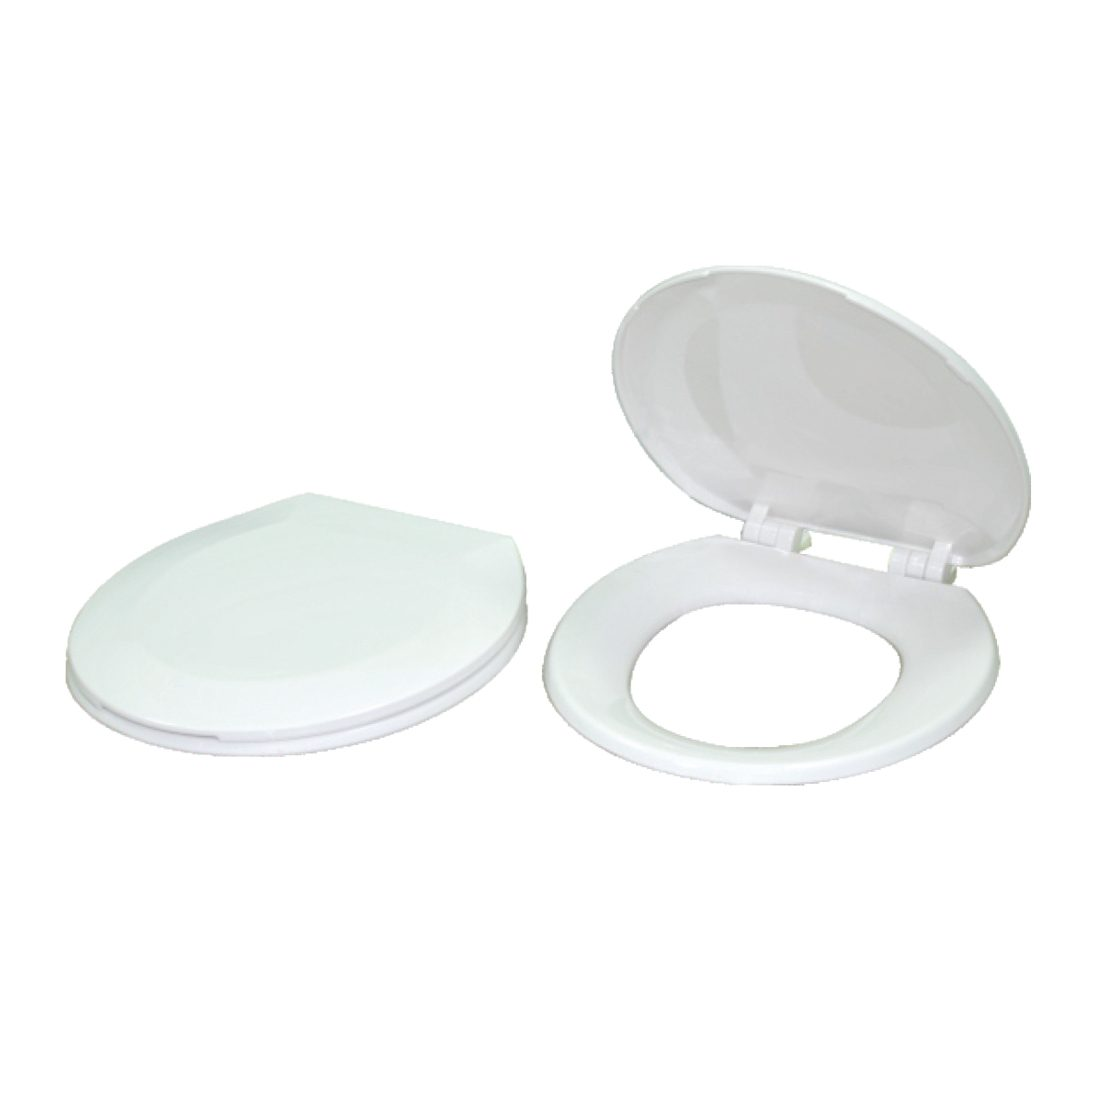 Soft Close Seat Cover For Round Toilet